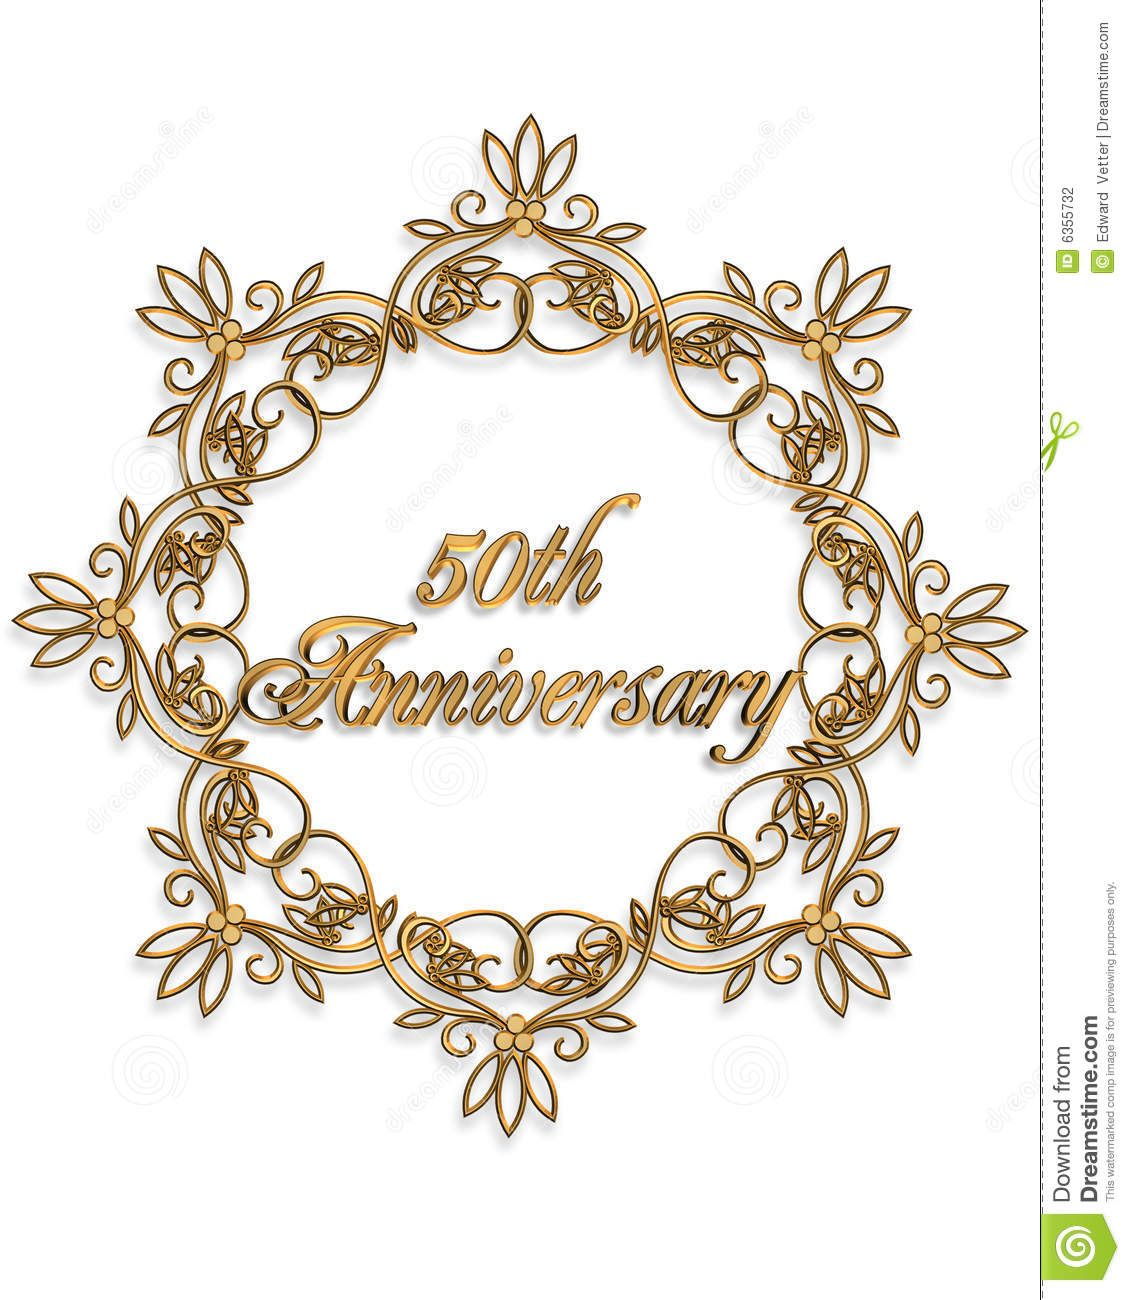 50th Anniversary Clip Art For Cards Clipart.